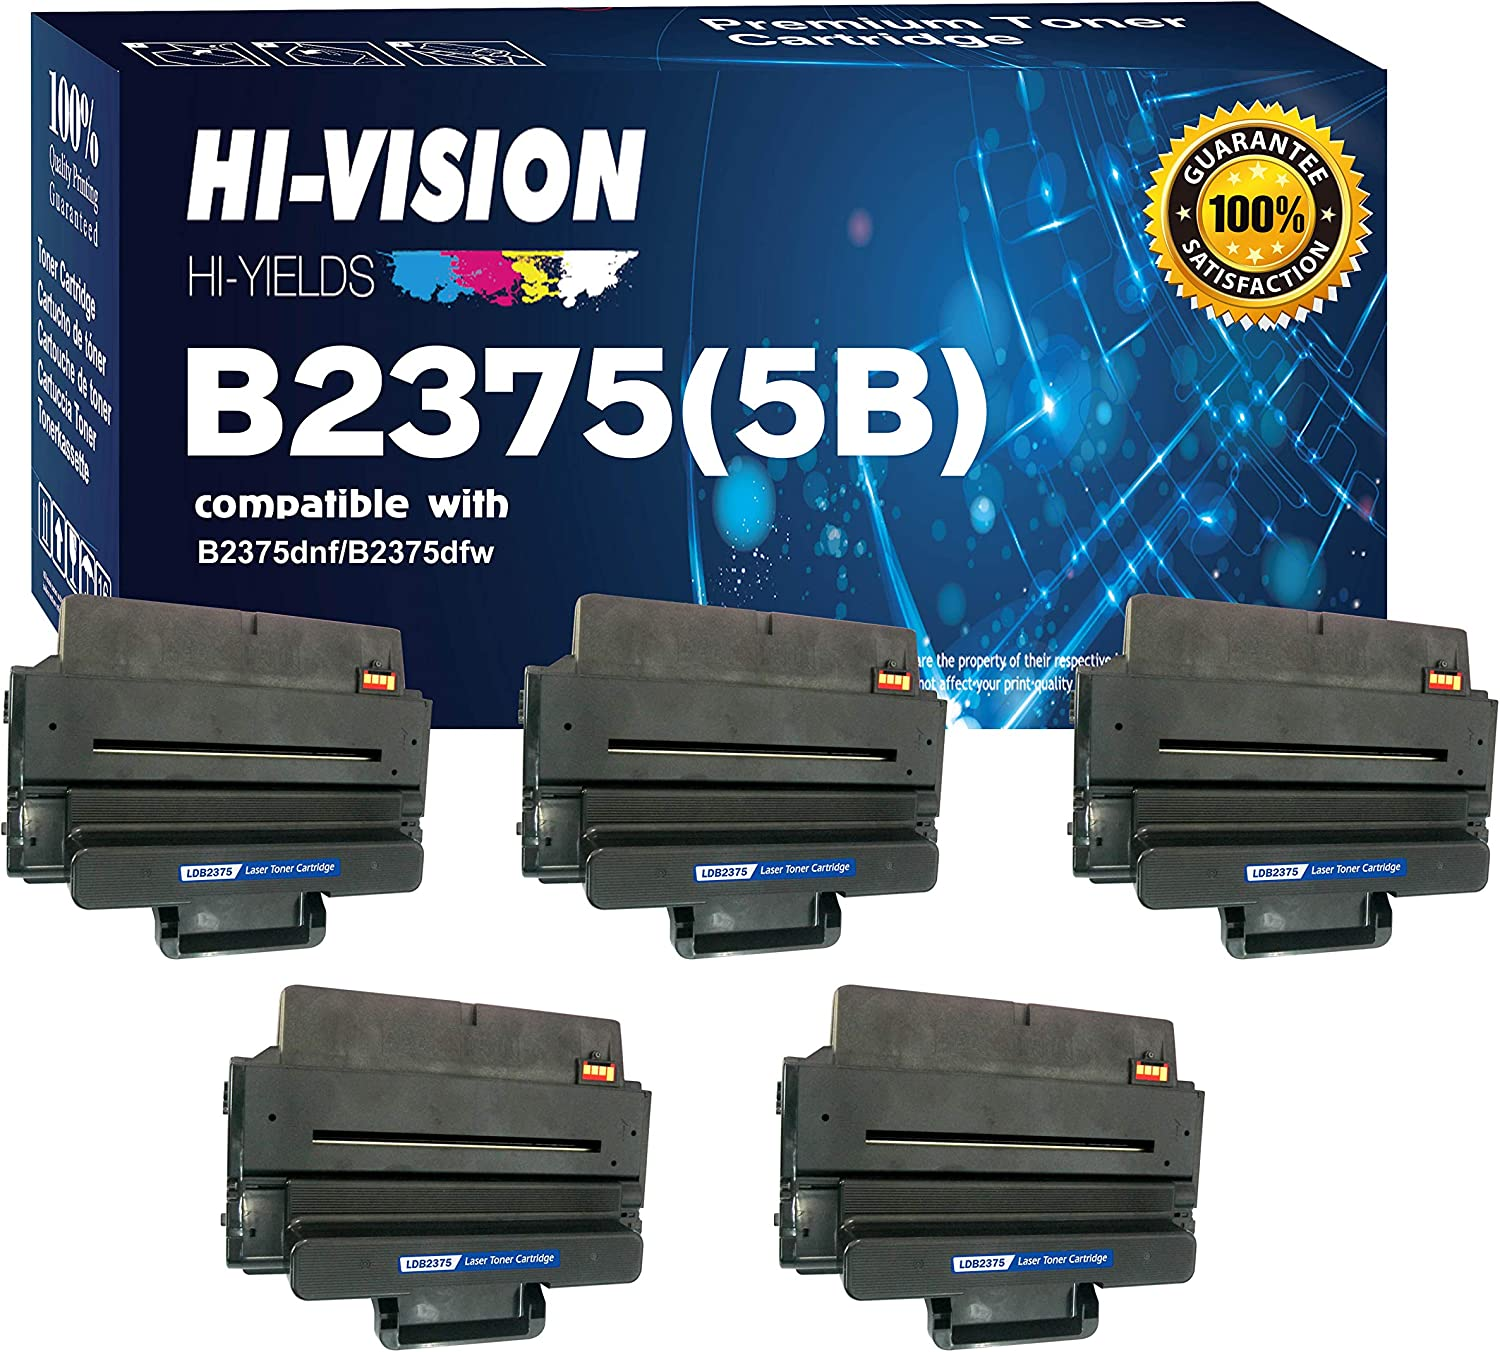 HI-VISION HI-YIELDS Compatible B2375 593-BBBJ, 8PTH4 (5 Pack) Black Toner Cartridge Replacement for B2375dnf, B2375dfw Multifunction Printers [10K Pages]